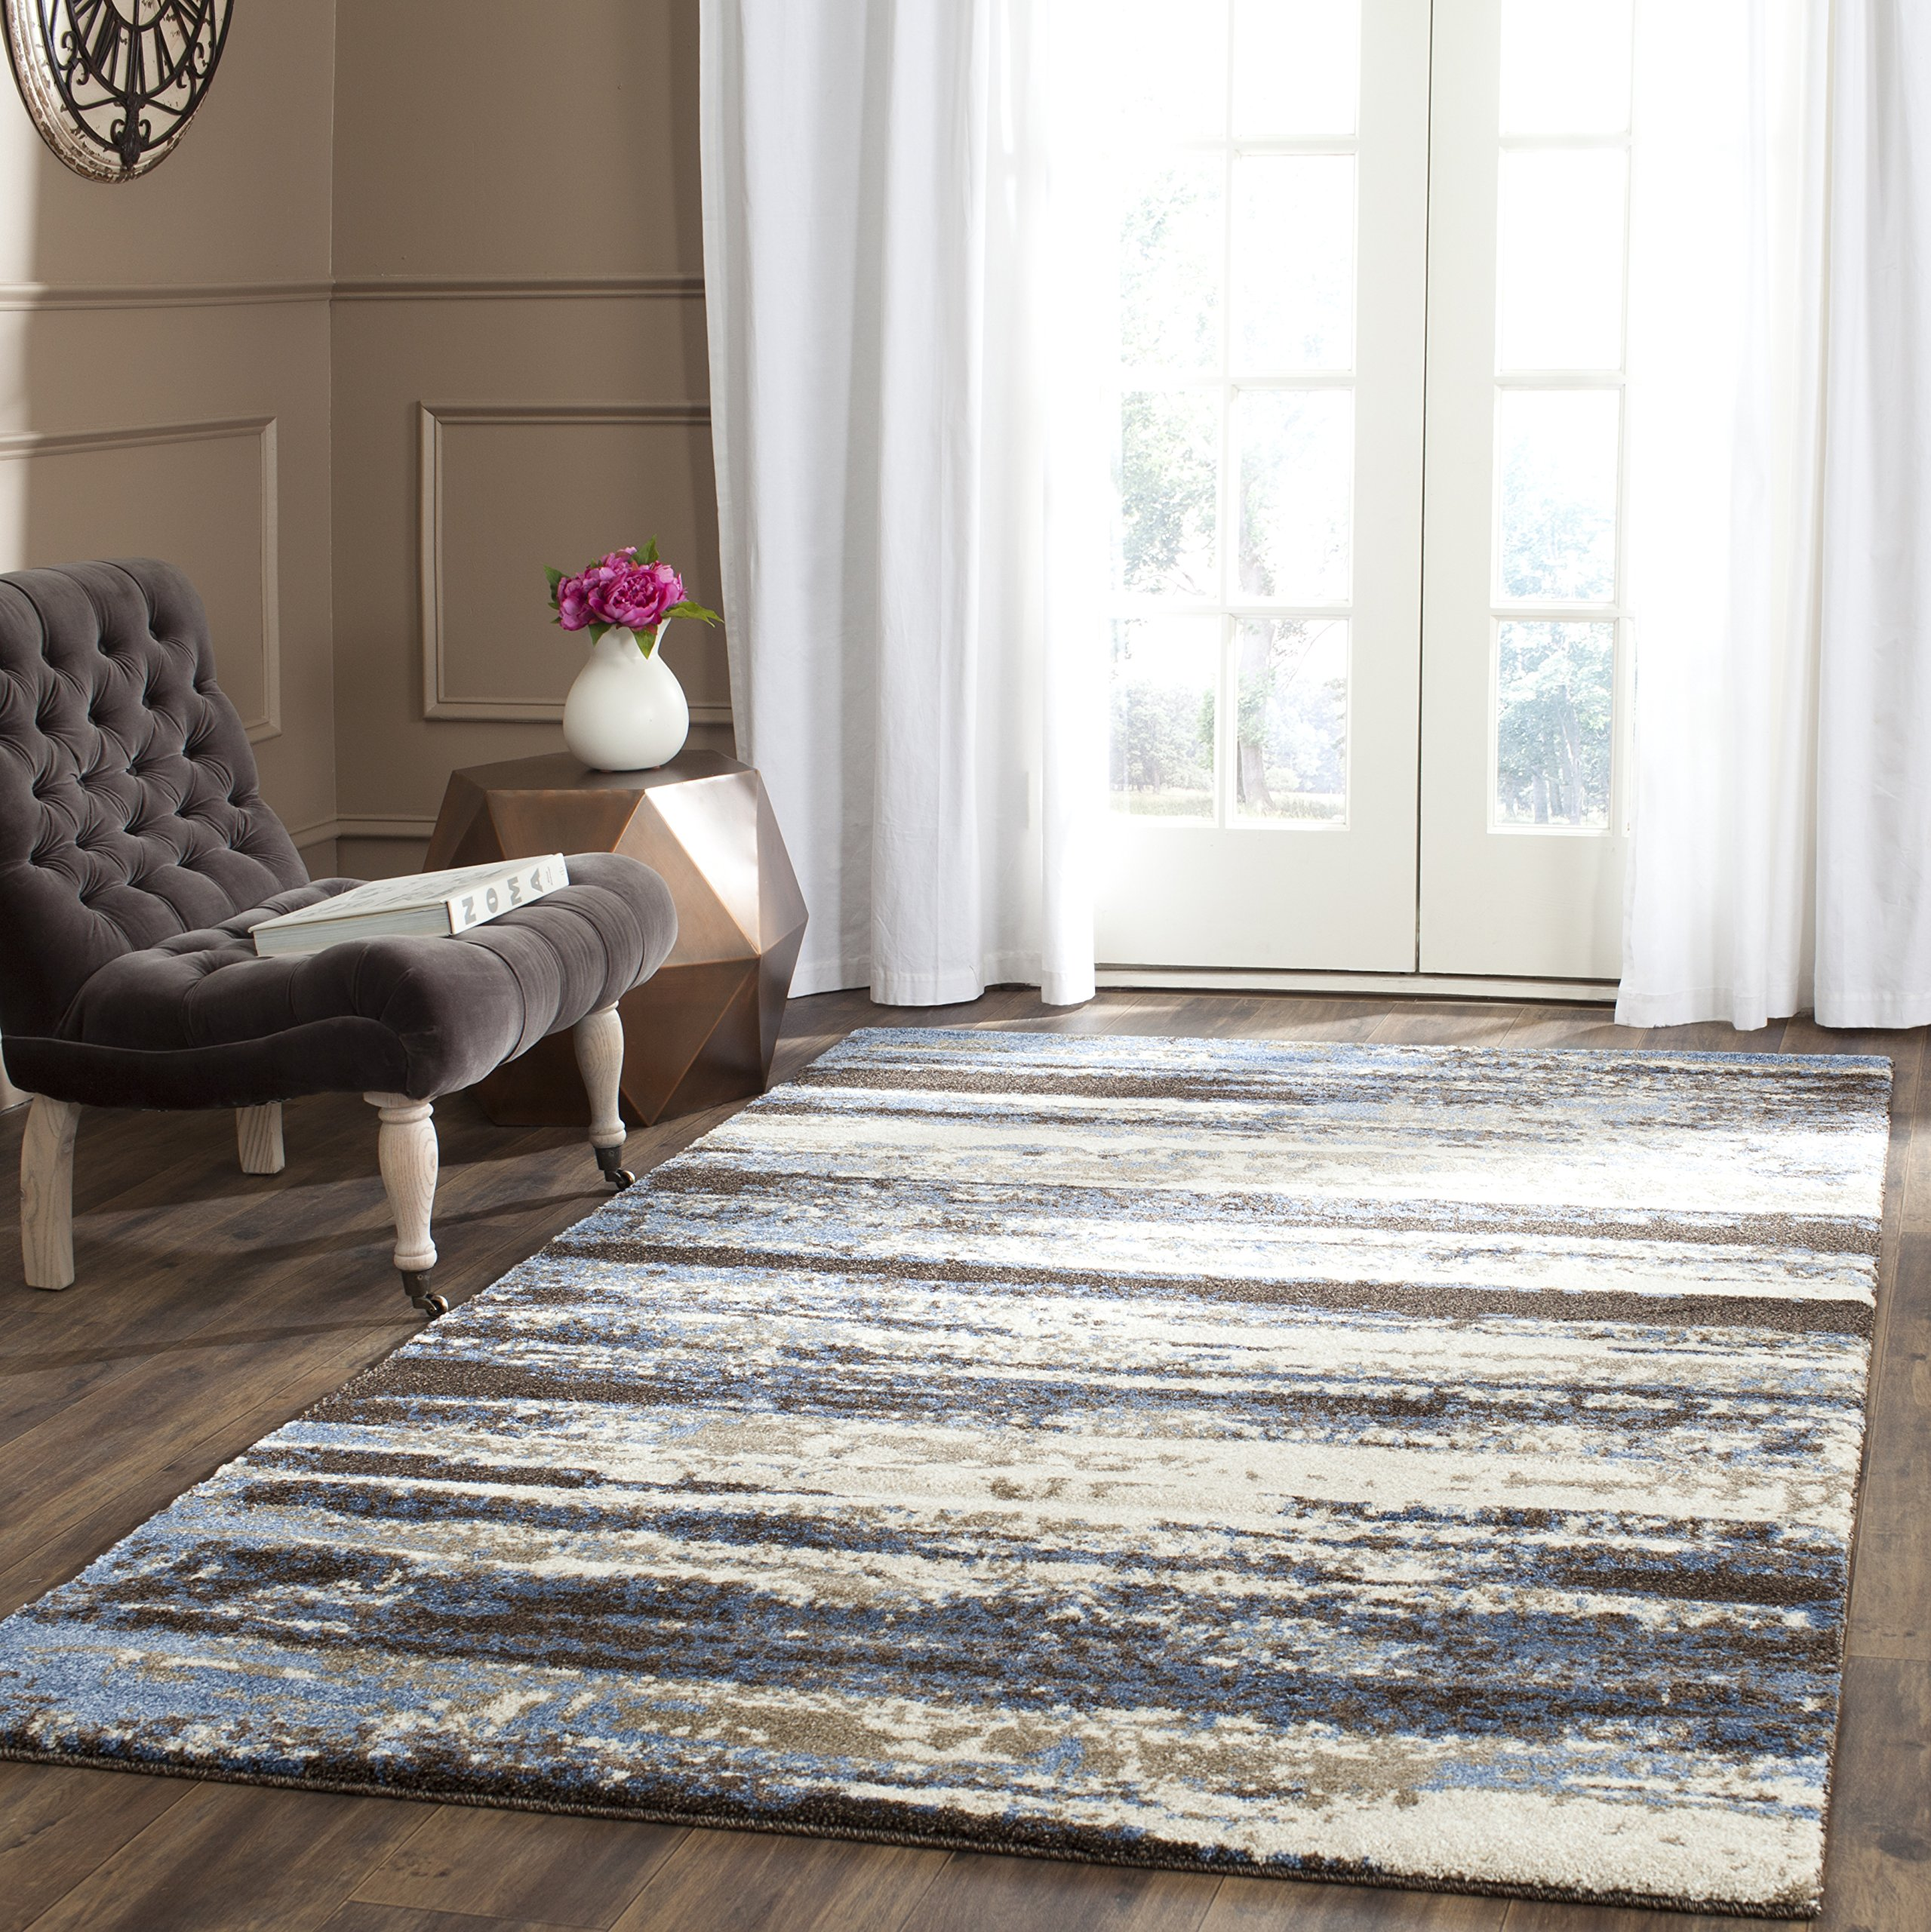 Safavieh Retro Collection RET2138-1165 Modern Abstract Cream and Blue Area Rug (6' x 9') by Safavieh